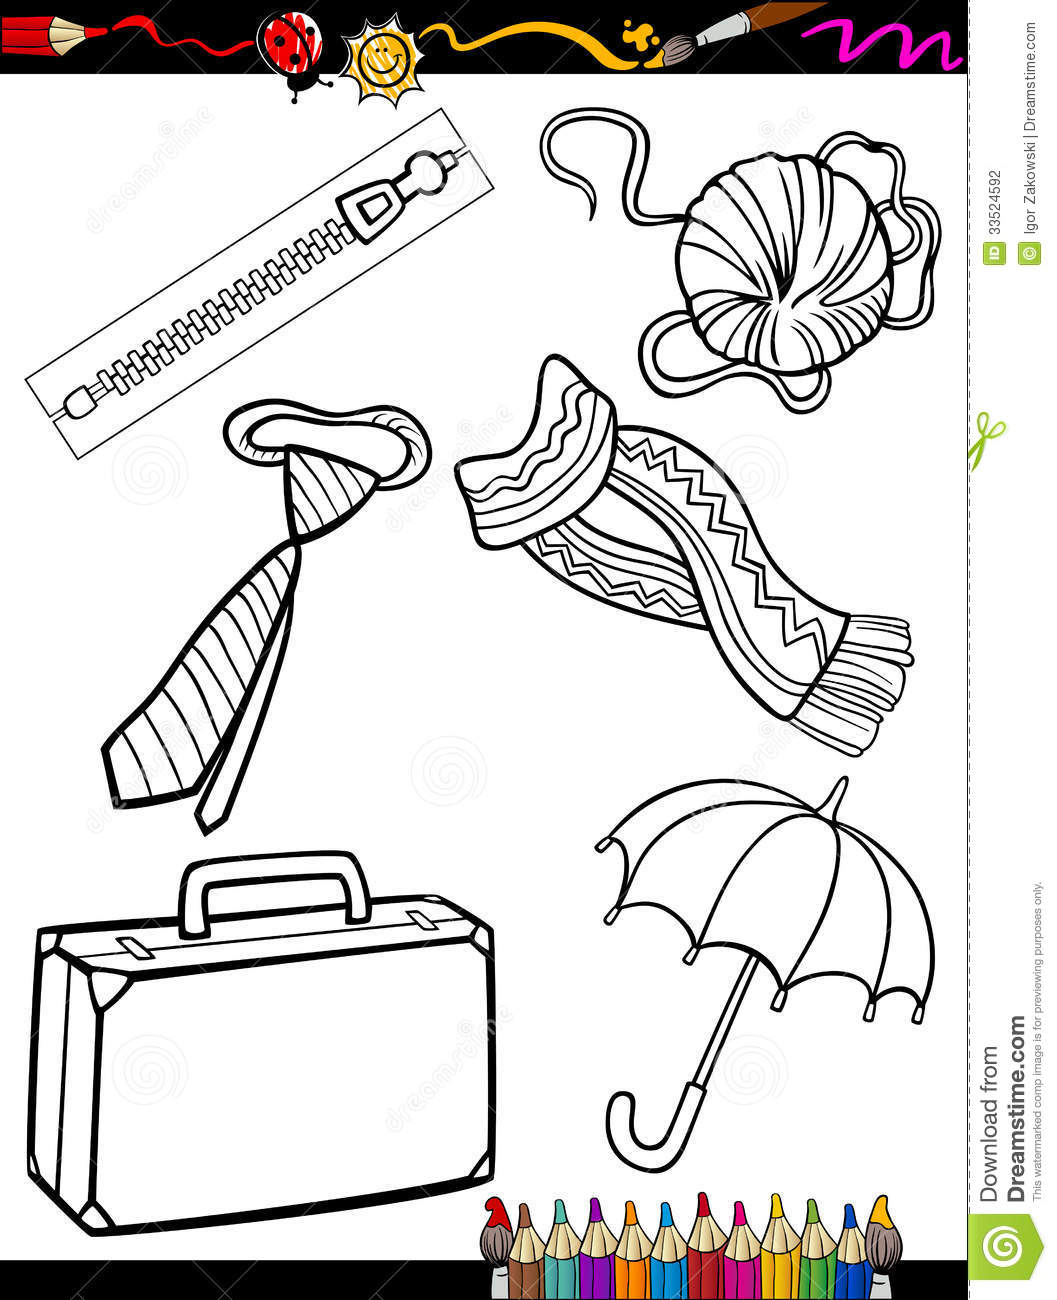 cartoon objects coloring page stock photography image 33524592